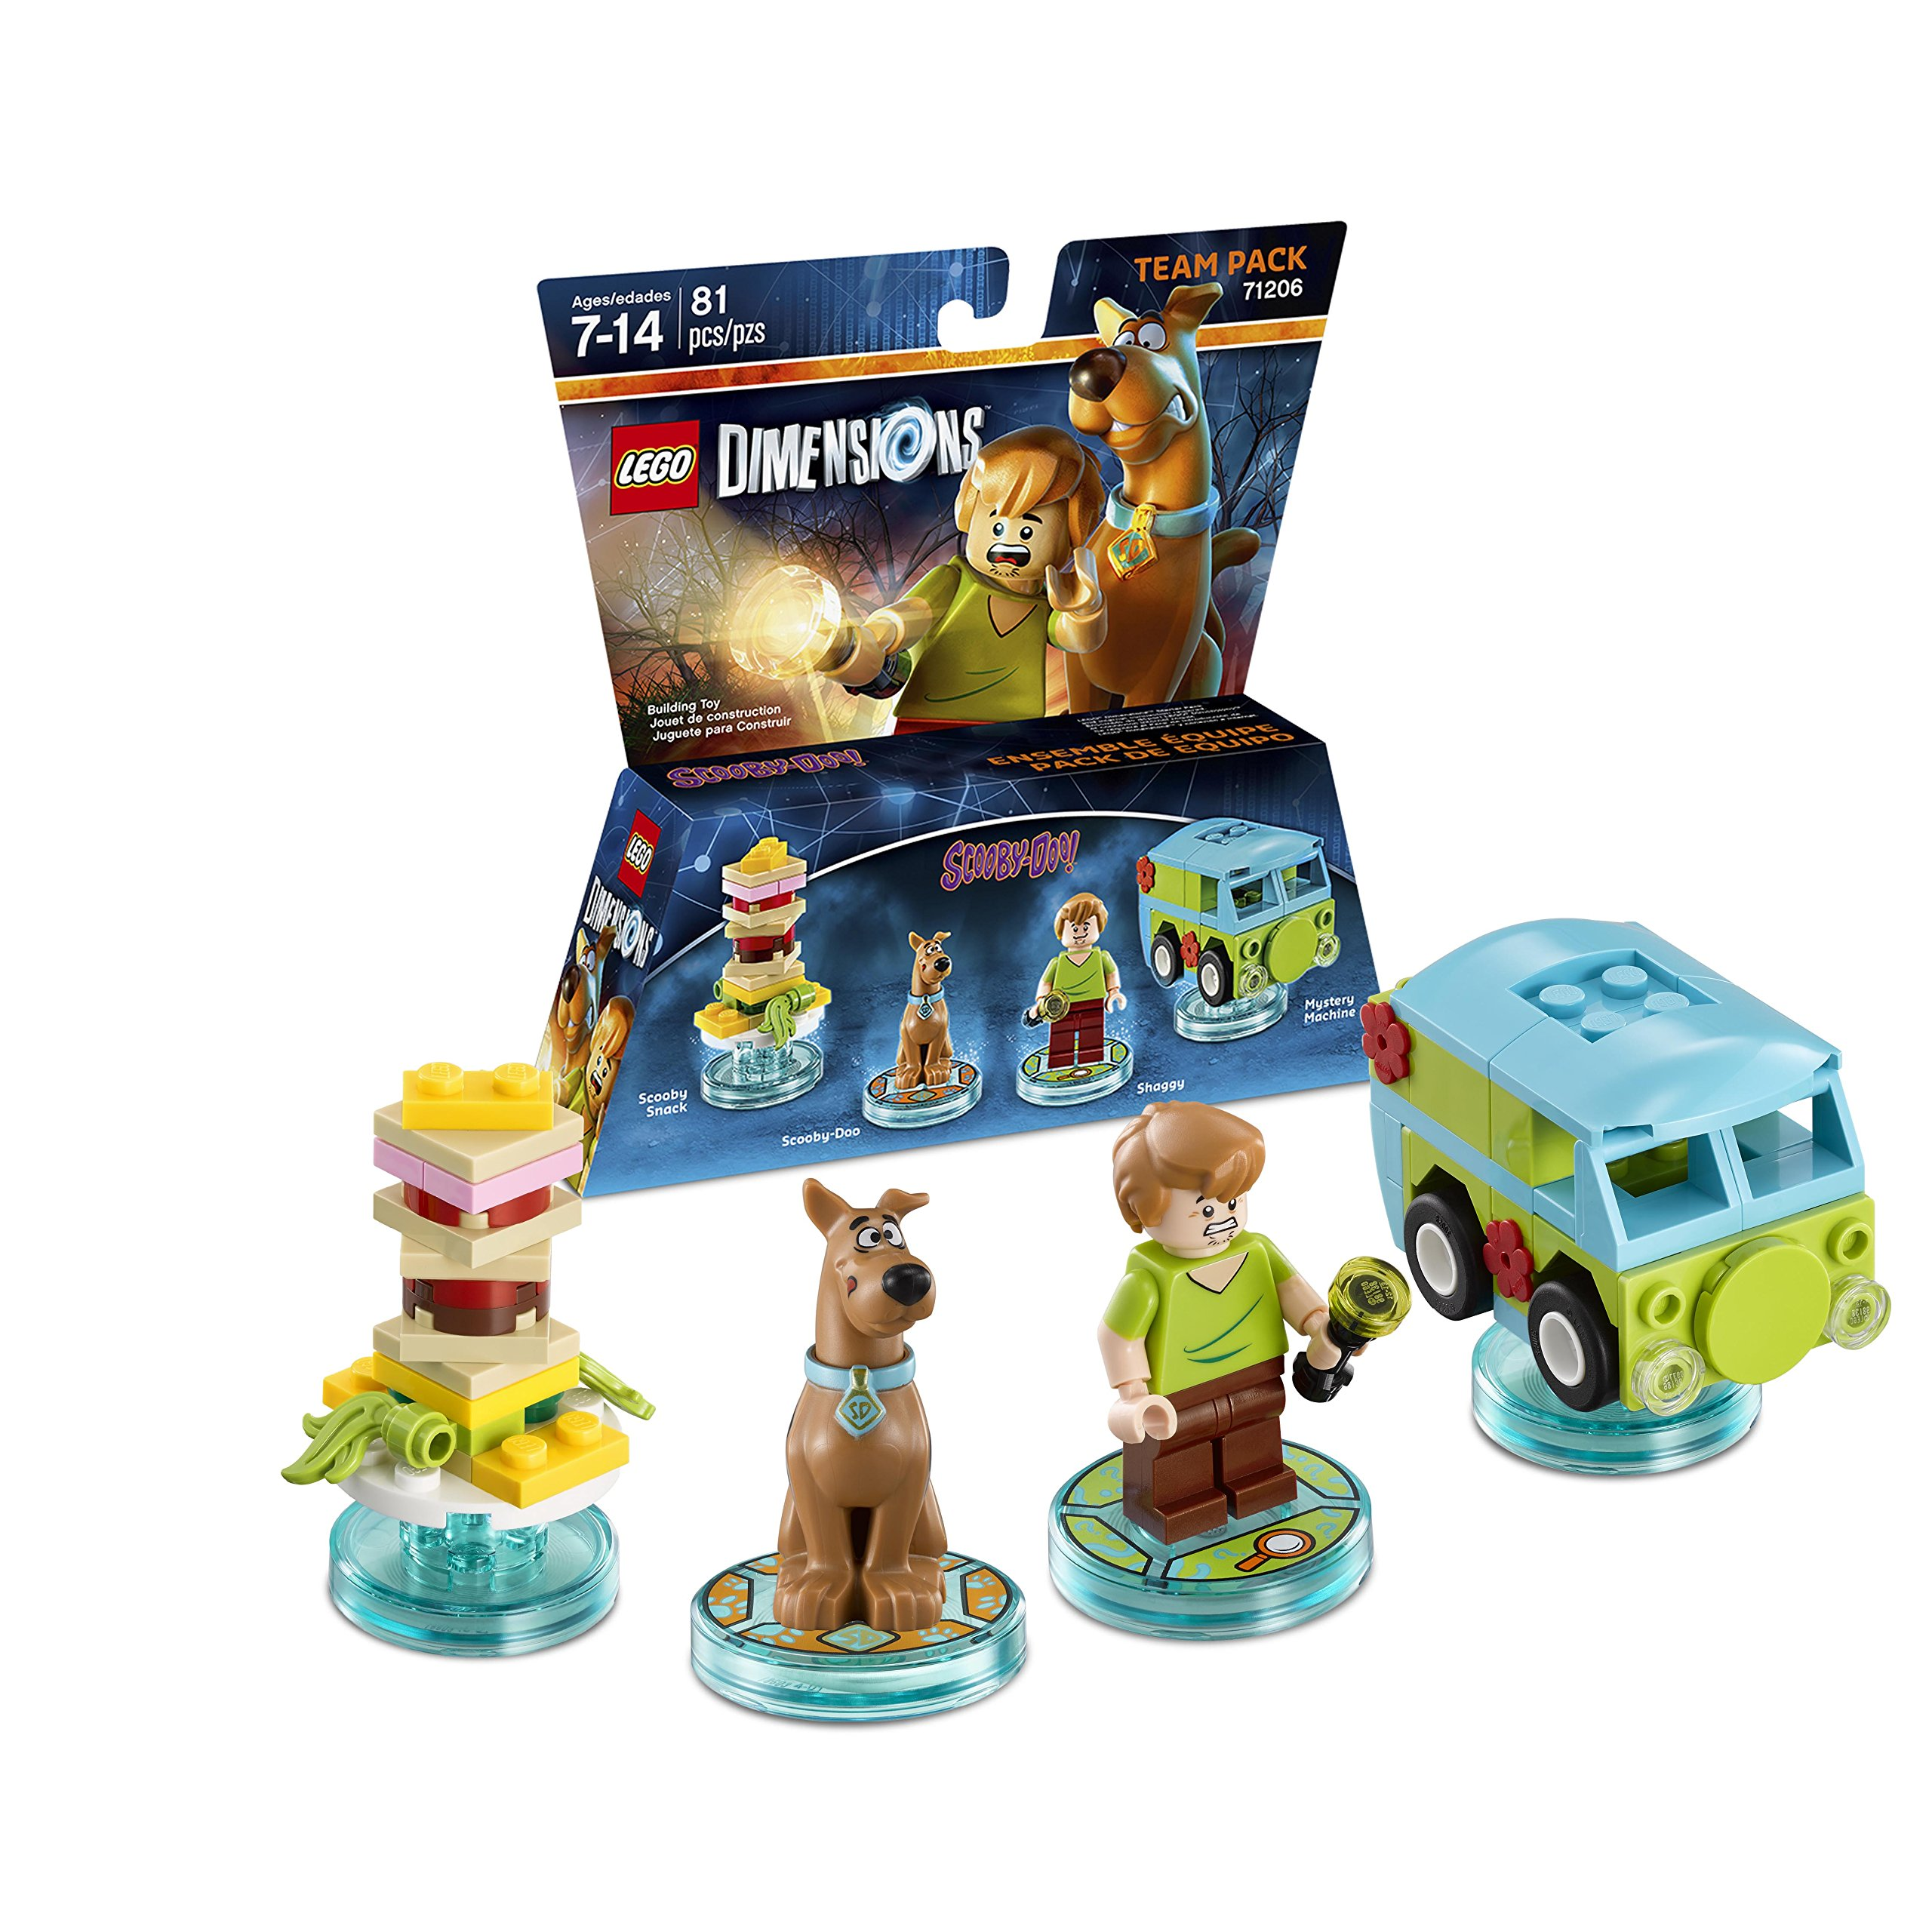 LEGO Dimensions Scooby Doo (Scooby Doo) Team Pack (Universal)